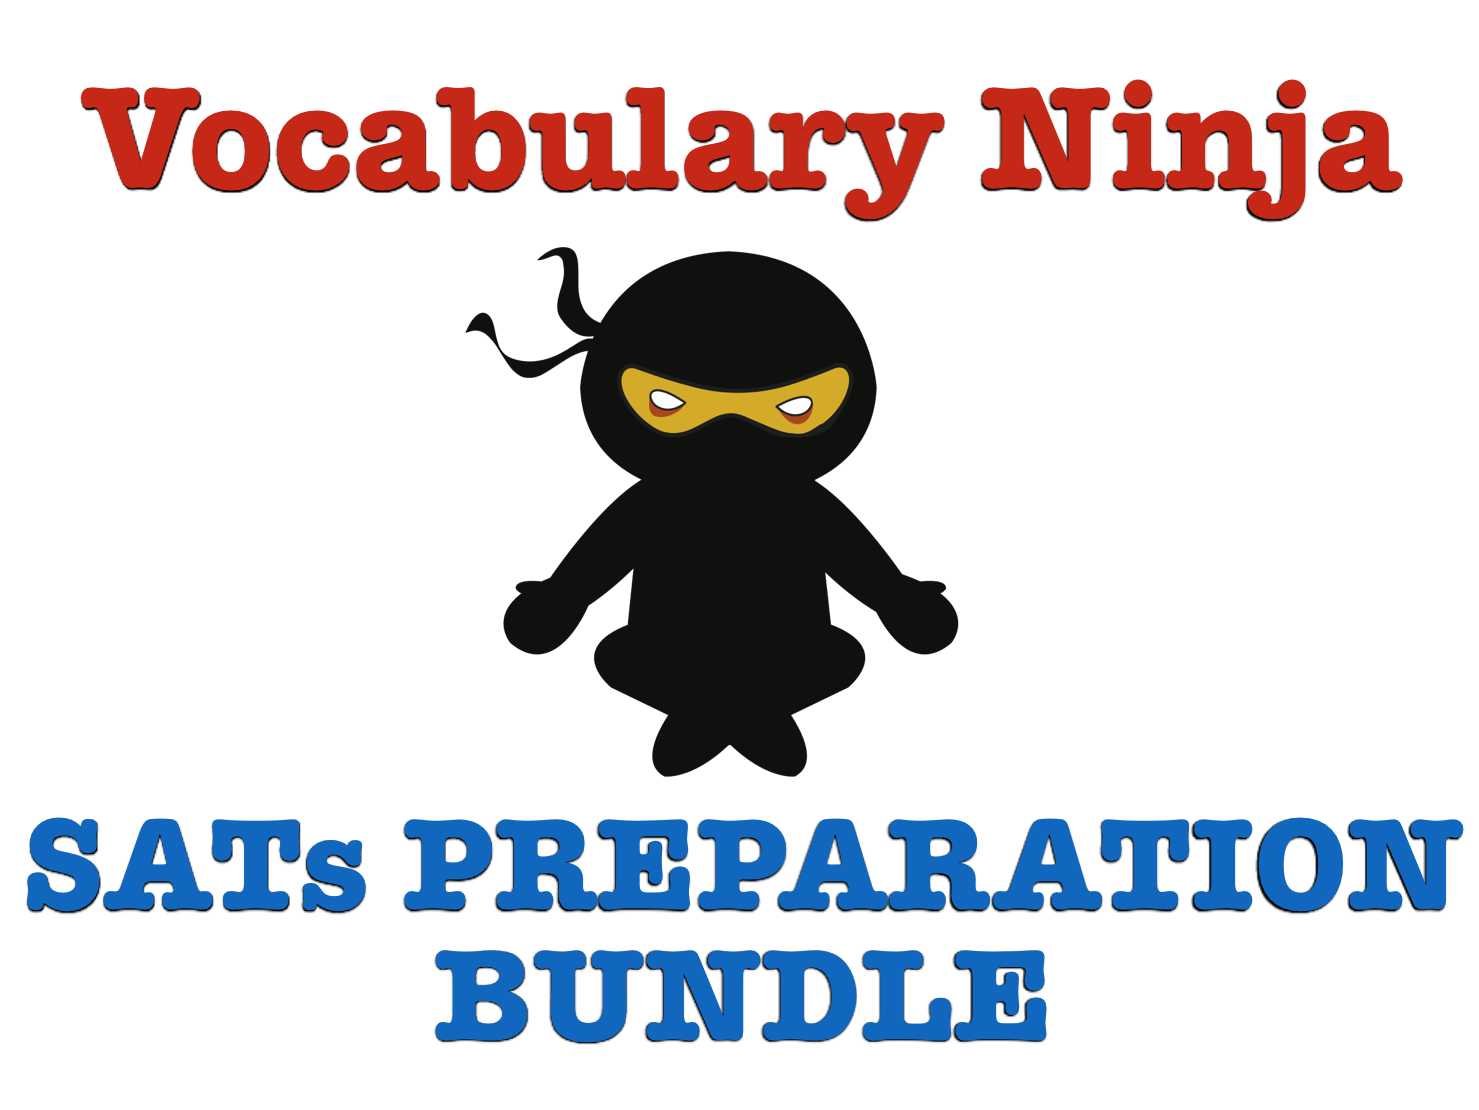 SATs Preparation Bundle